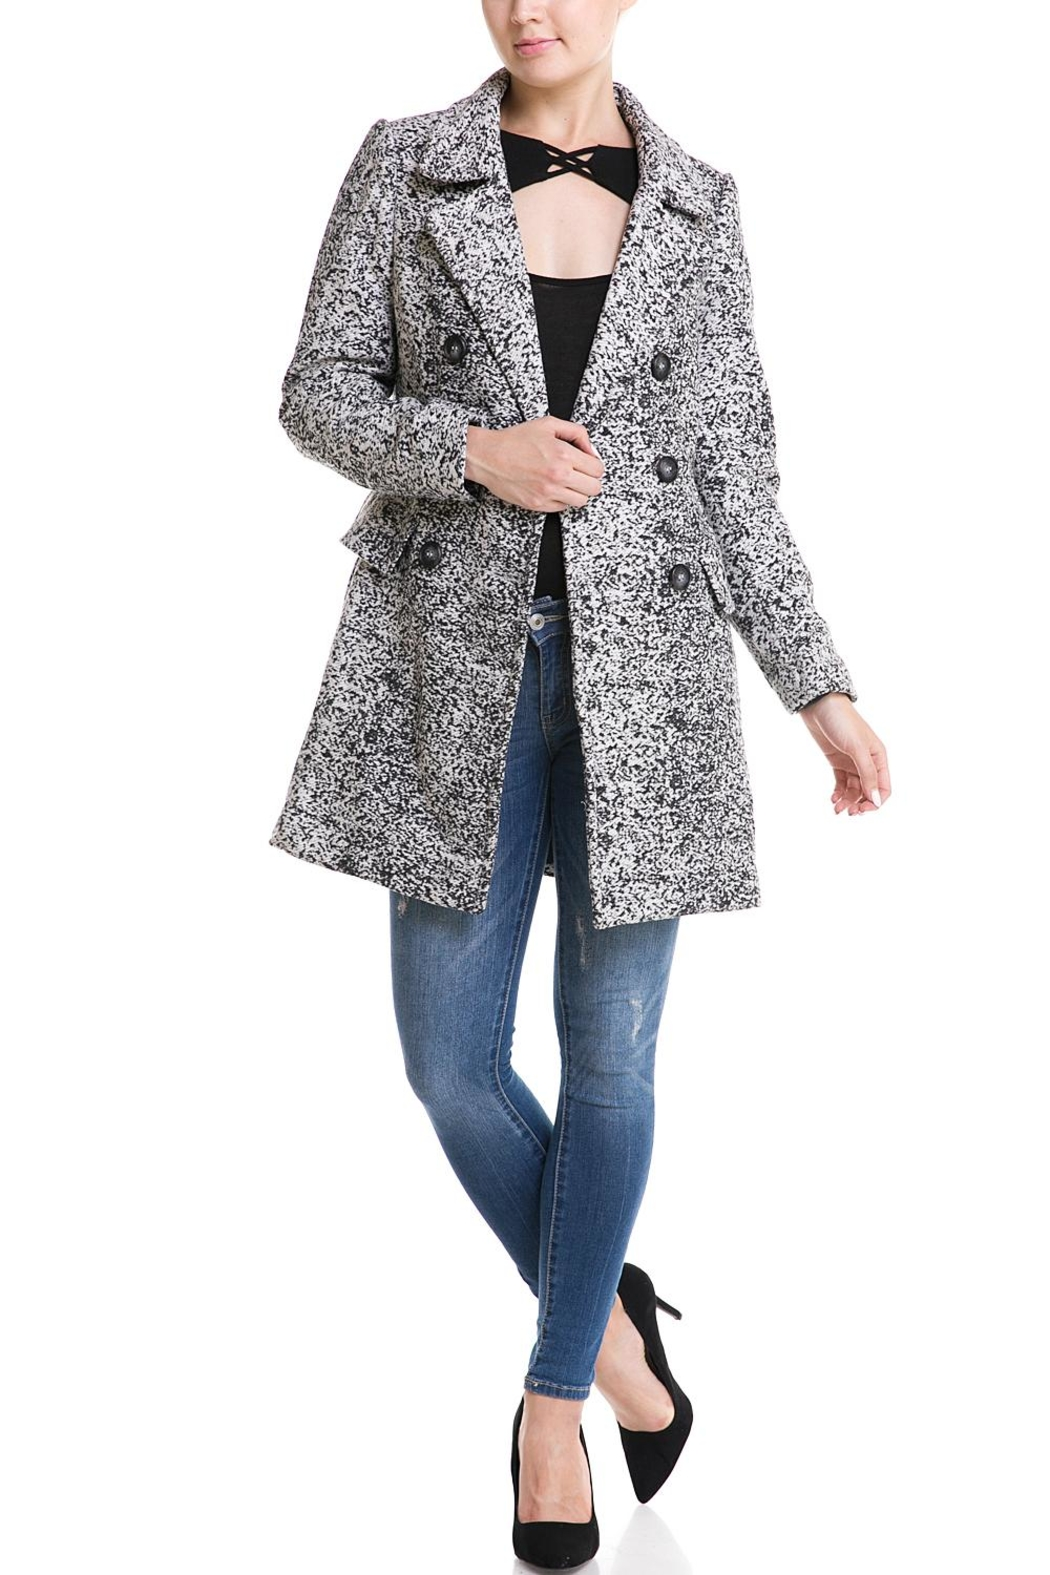 MICHEL Double Breasted Jacket - Front Full Image